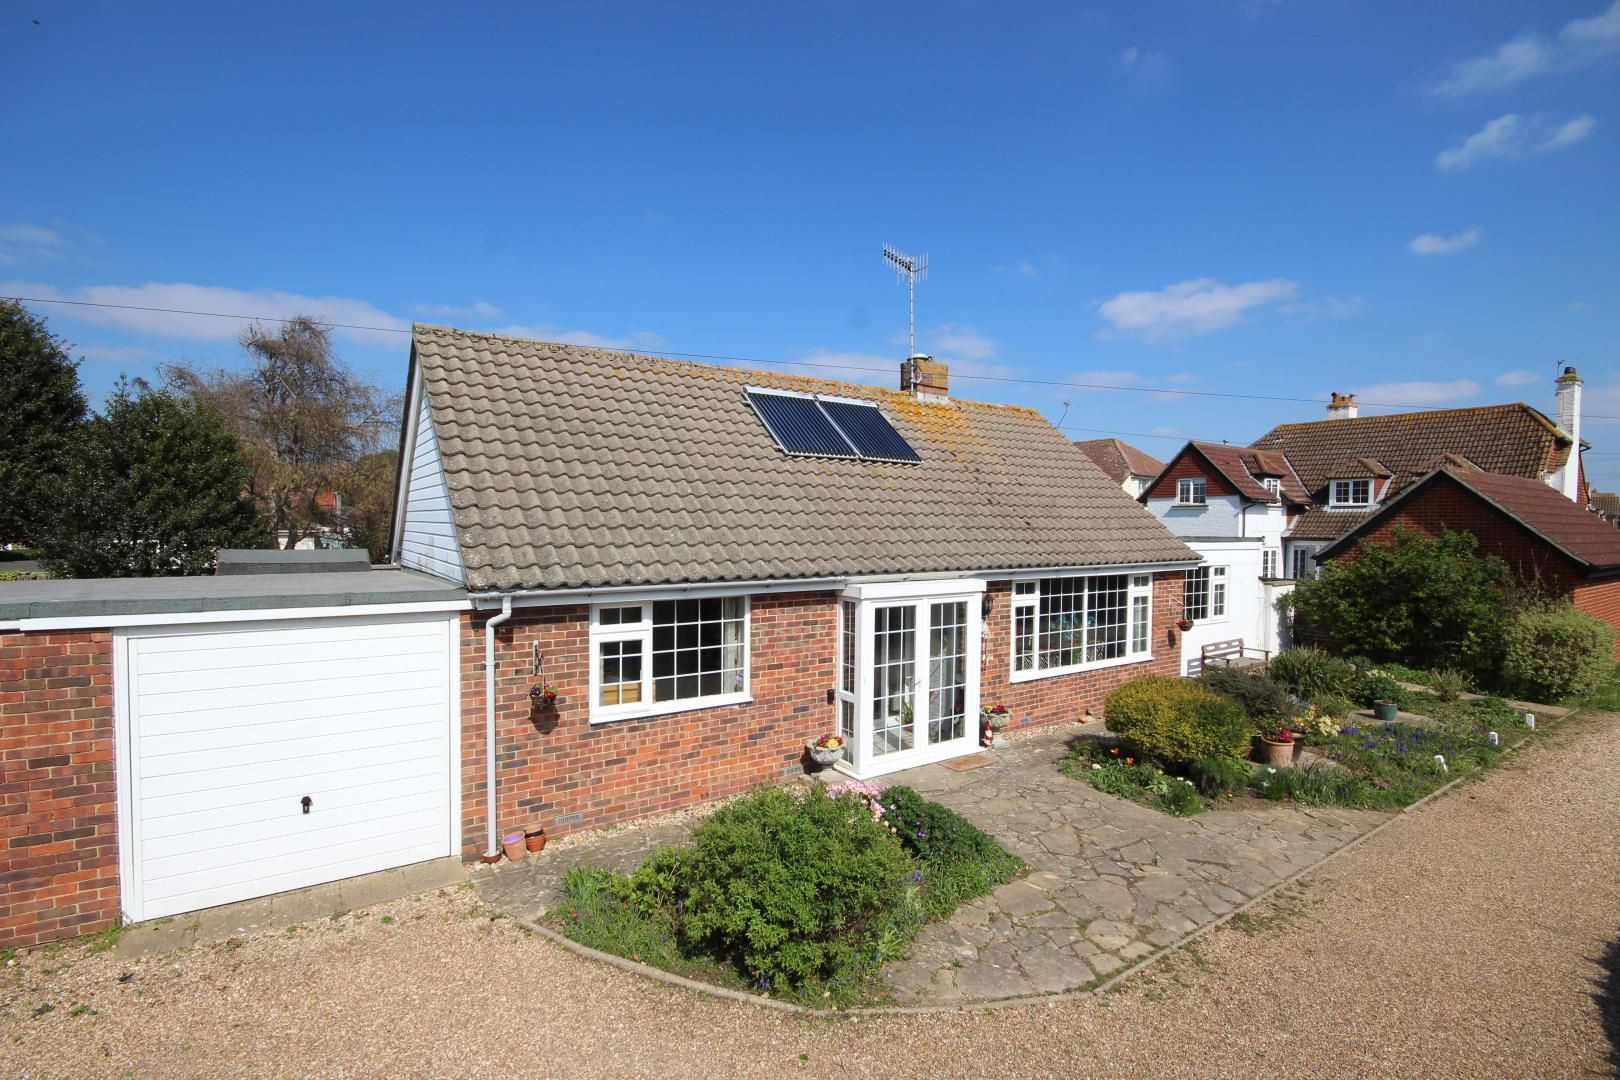 3 bed bungalow for sale in Greenbushes Close - Property Image 1